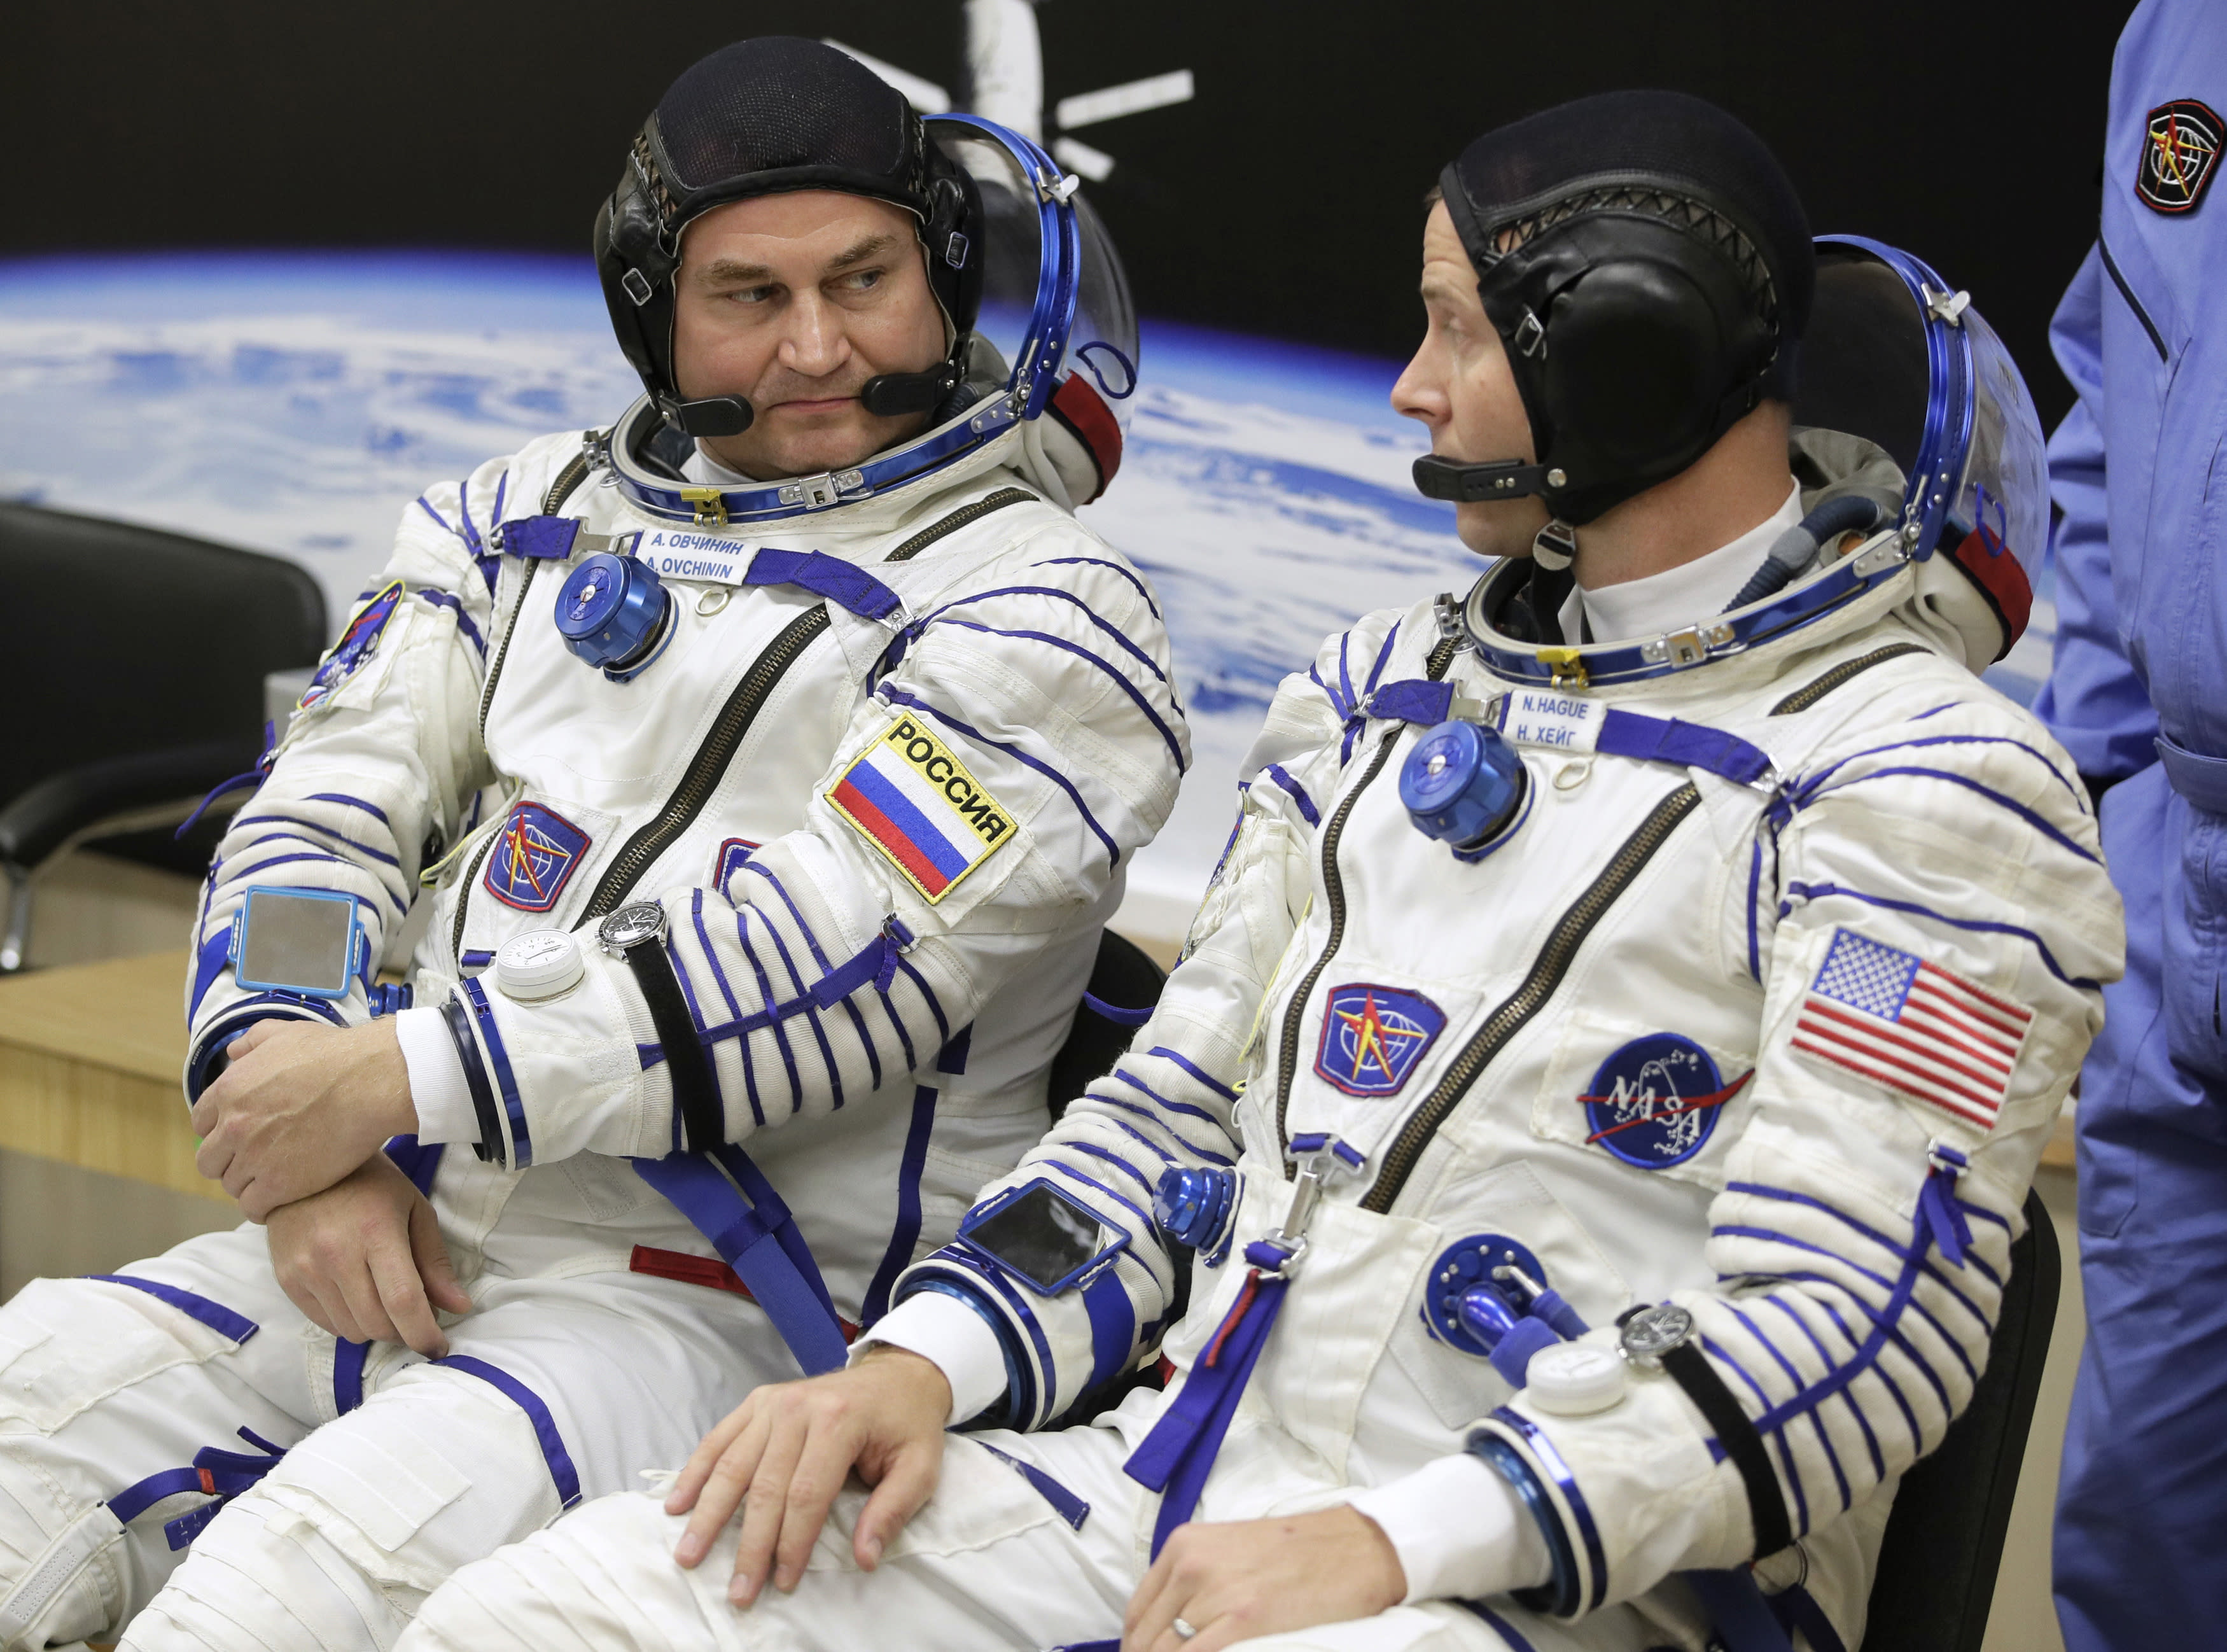 U.S. and Russian Astronauts Safe After Making Emergency Landing When Booster Roc...